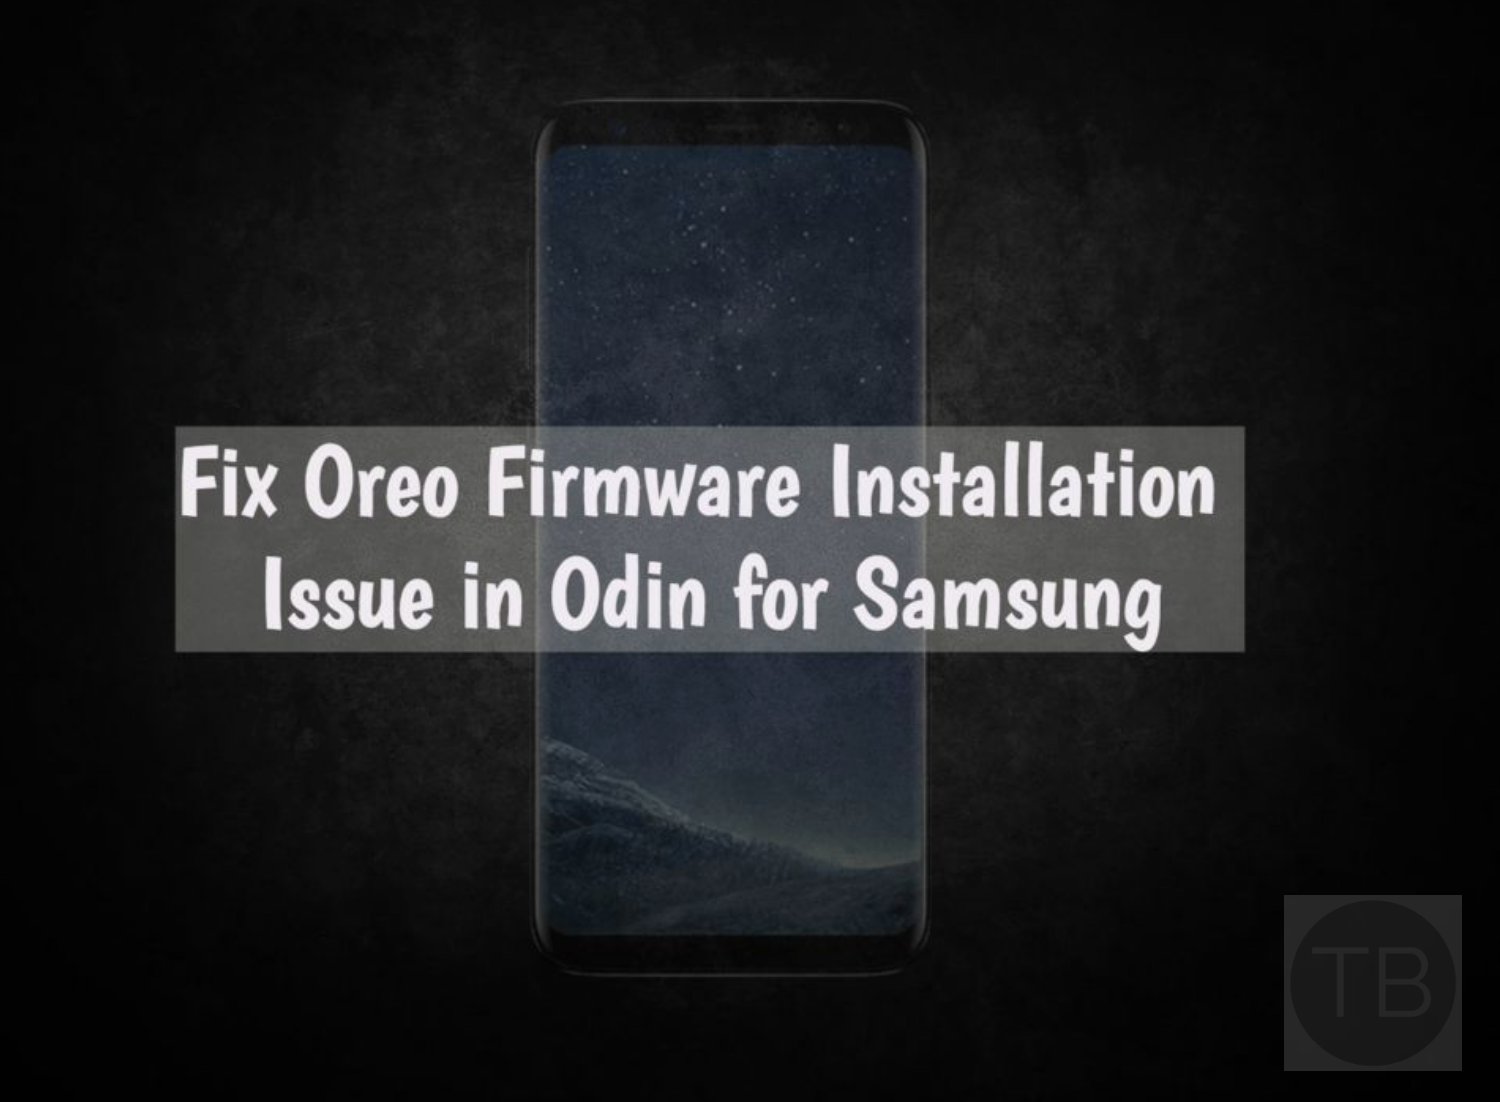 Oreo Firmware Installation Issue in Odin